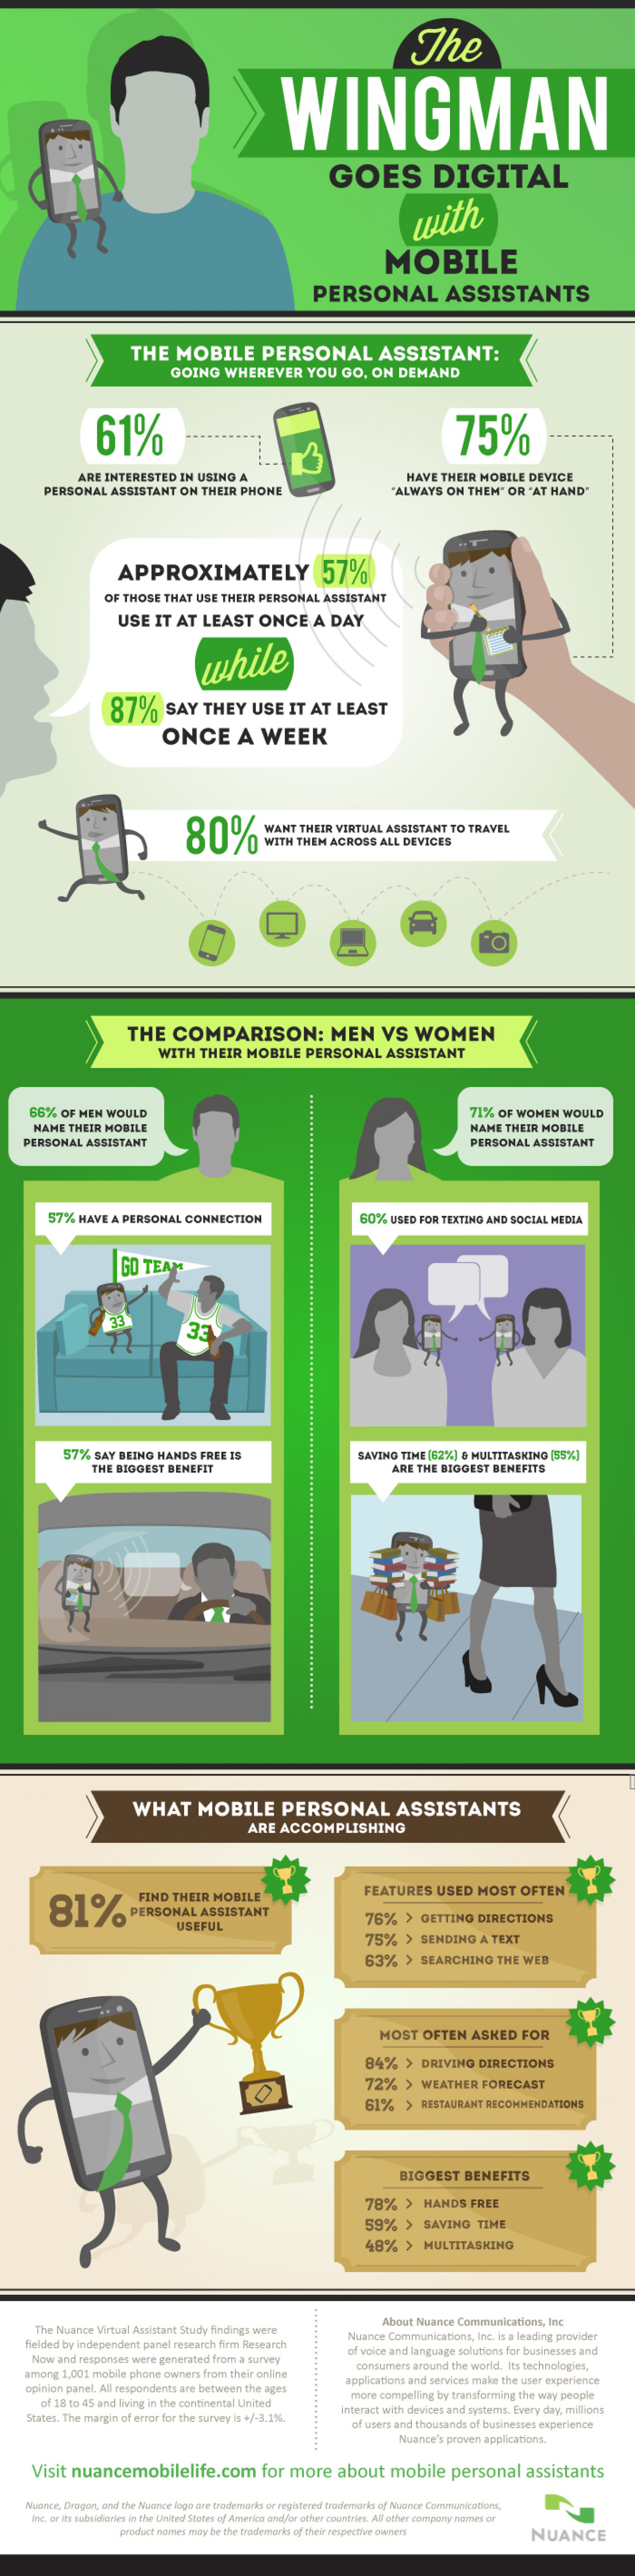 The Wingman Goes Digital with Mobile Personal Assistants Infographic